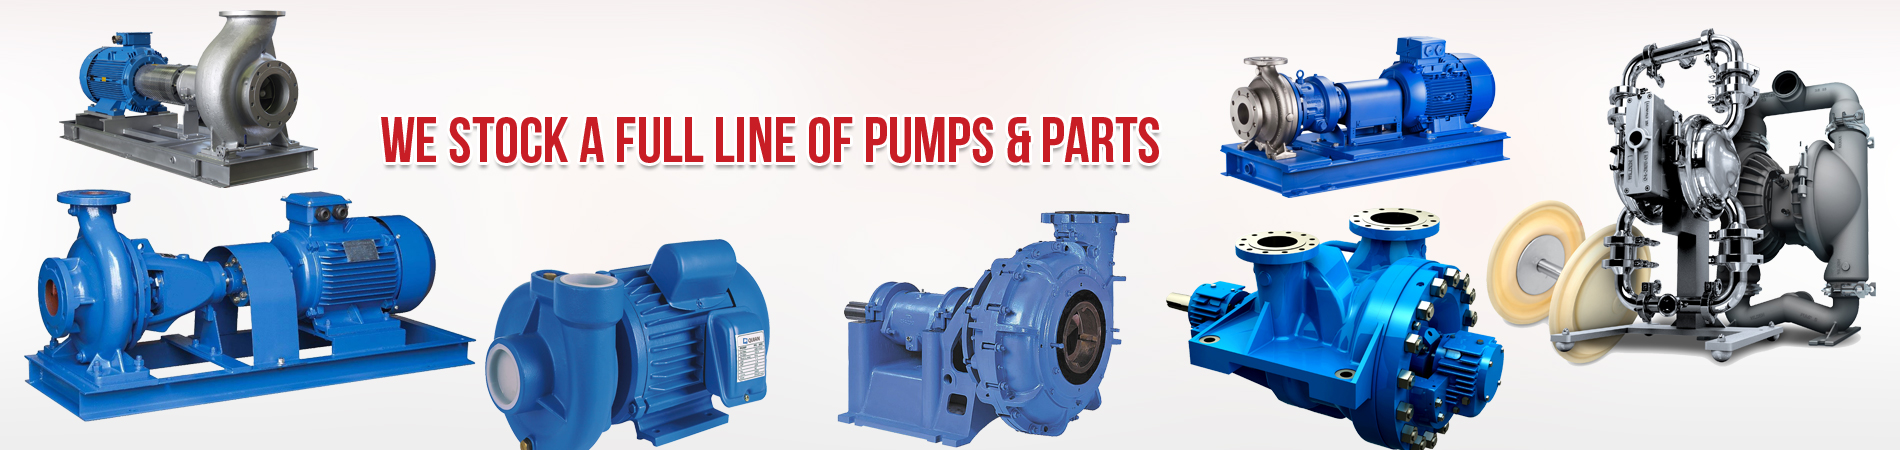 Barish Pump Company, Pumping Supplies, Pump Flow Solutions